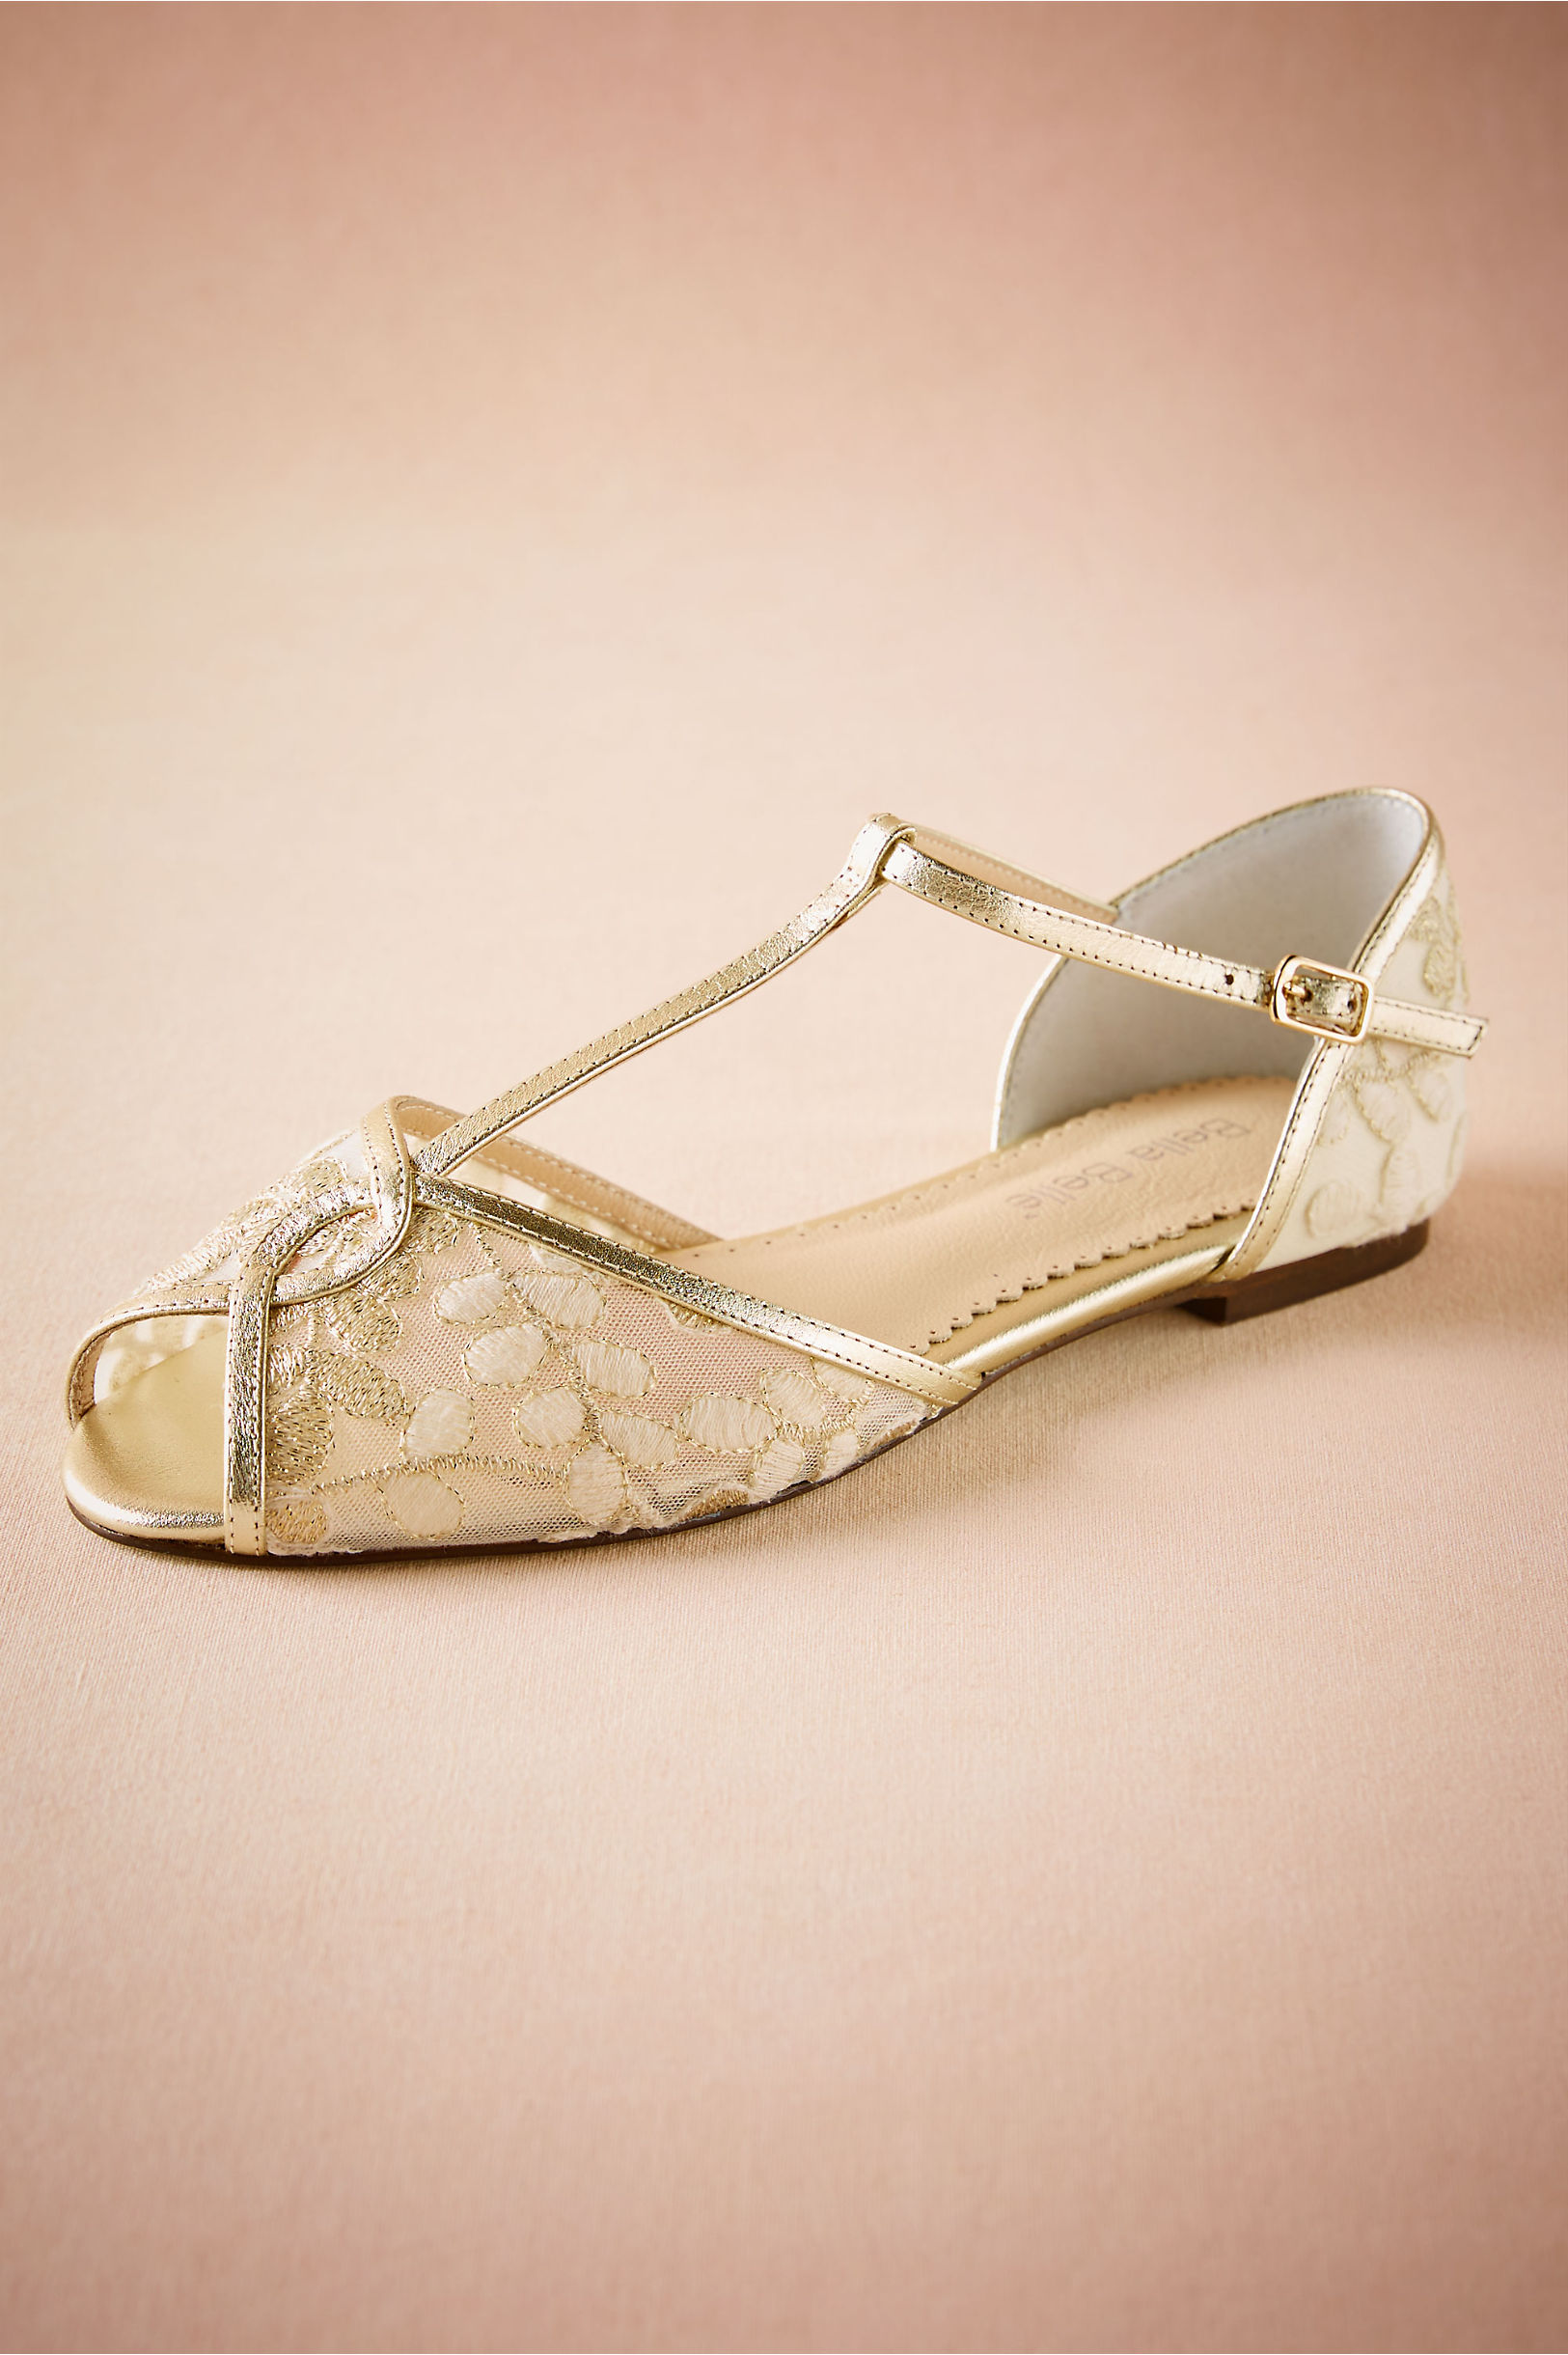 1940s Womens Footwear Maisie Embroidered T-Strap Flats $190.00 AT vintagedancer.com